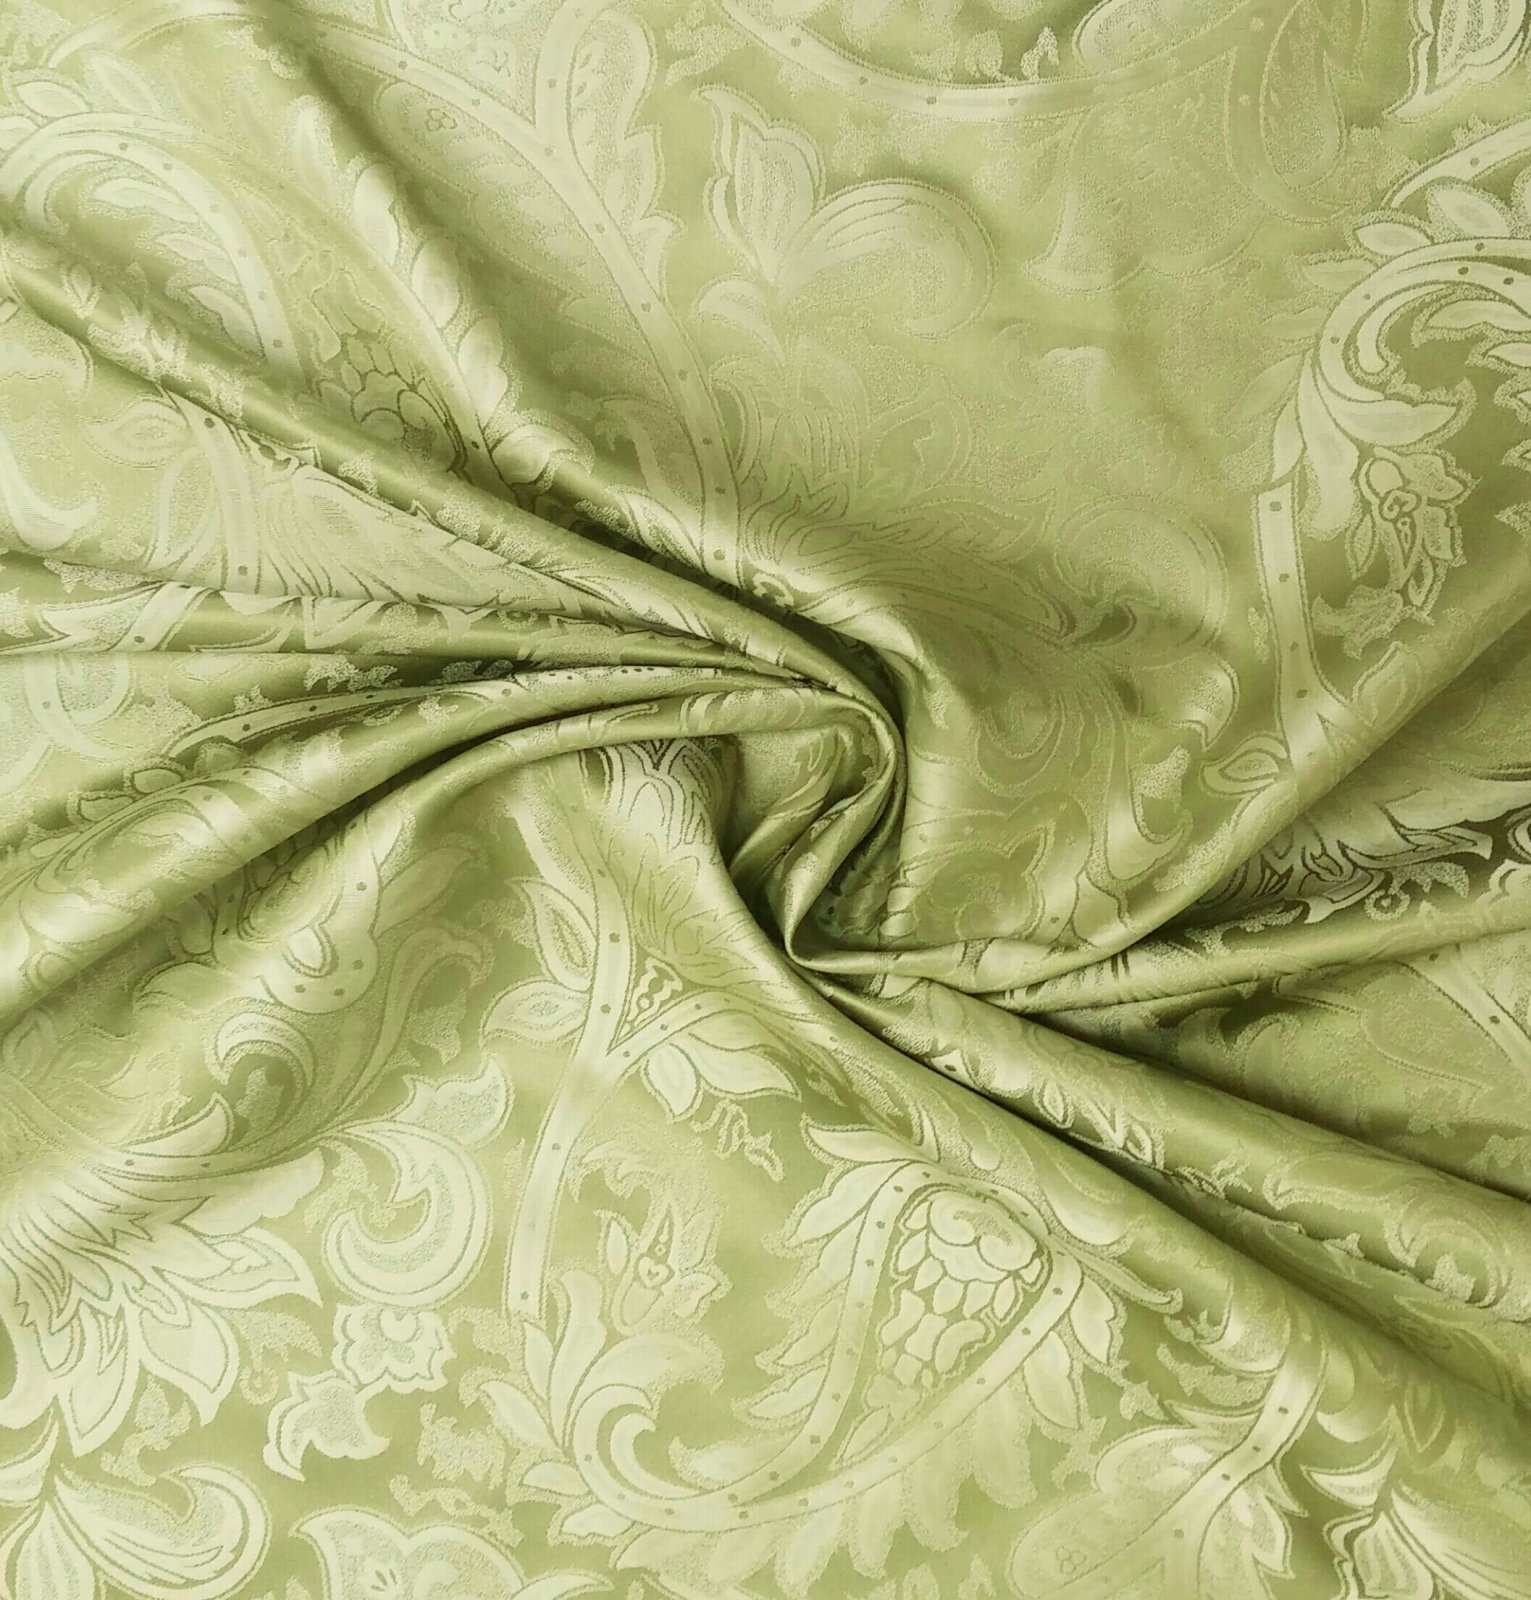 NL047 Green Silk Leaf Damask Nature Floral Paisley Drapery Home Dec Fabric